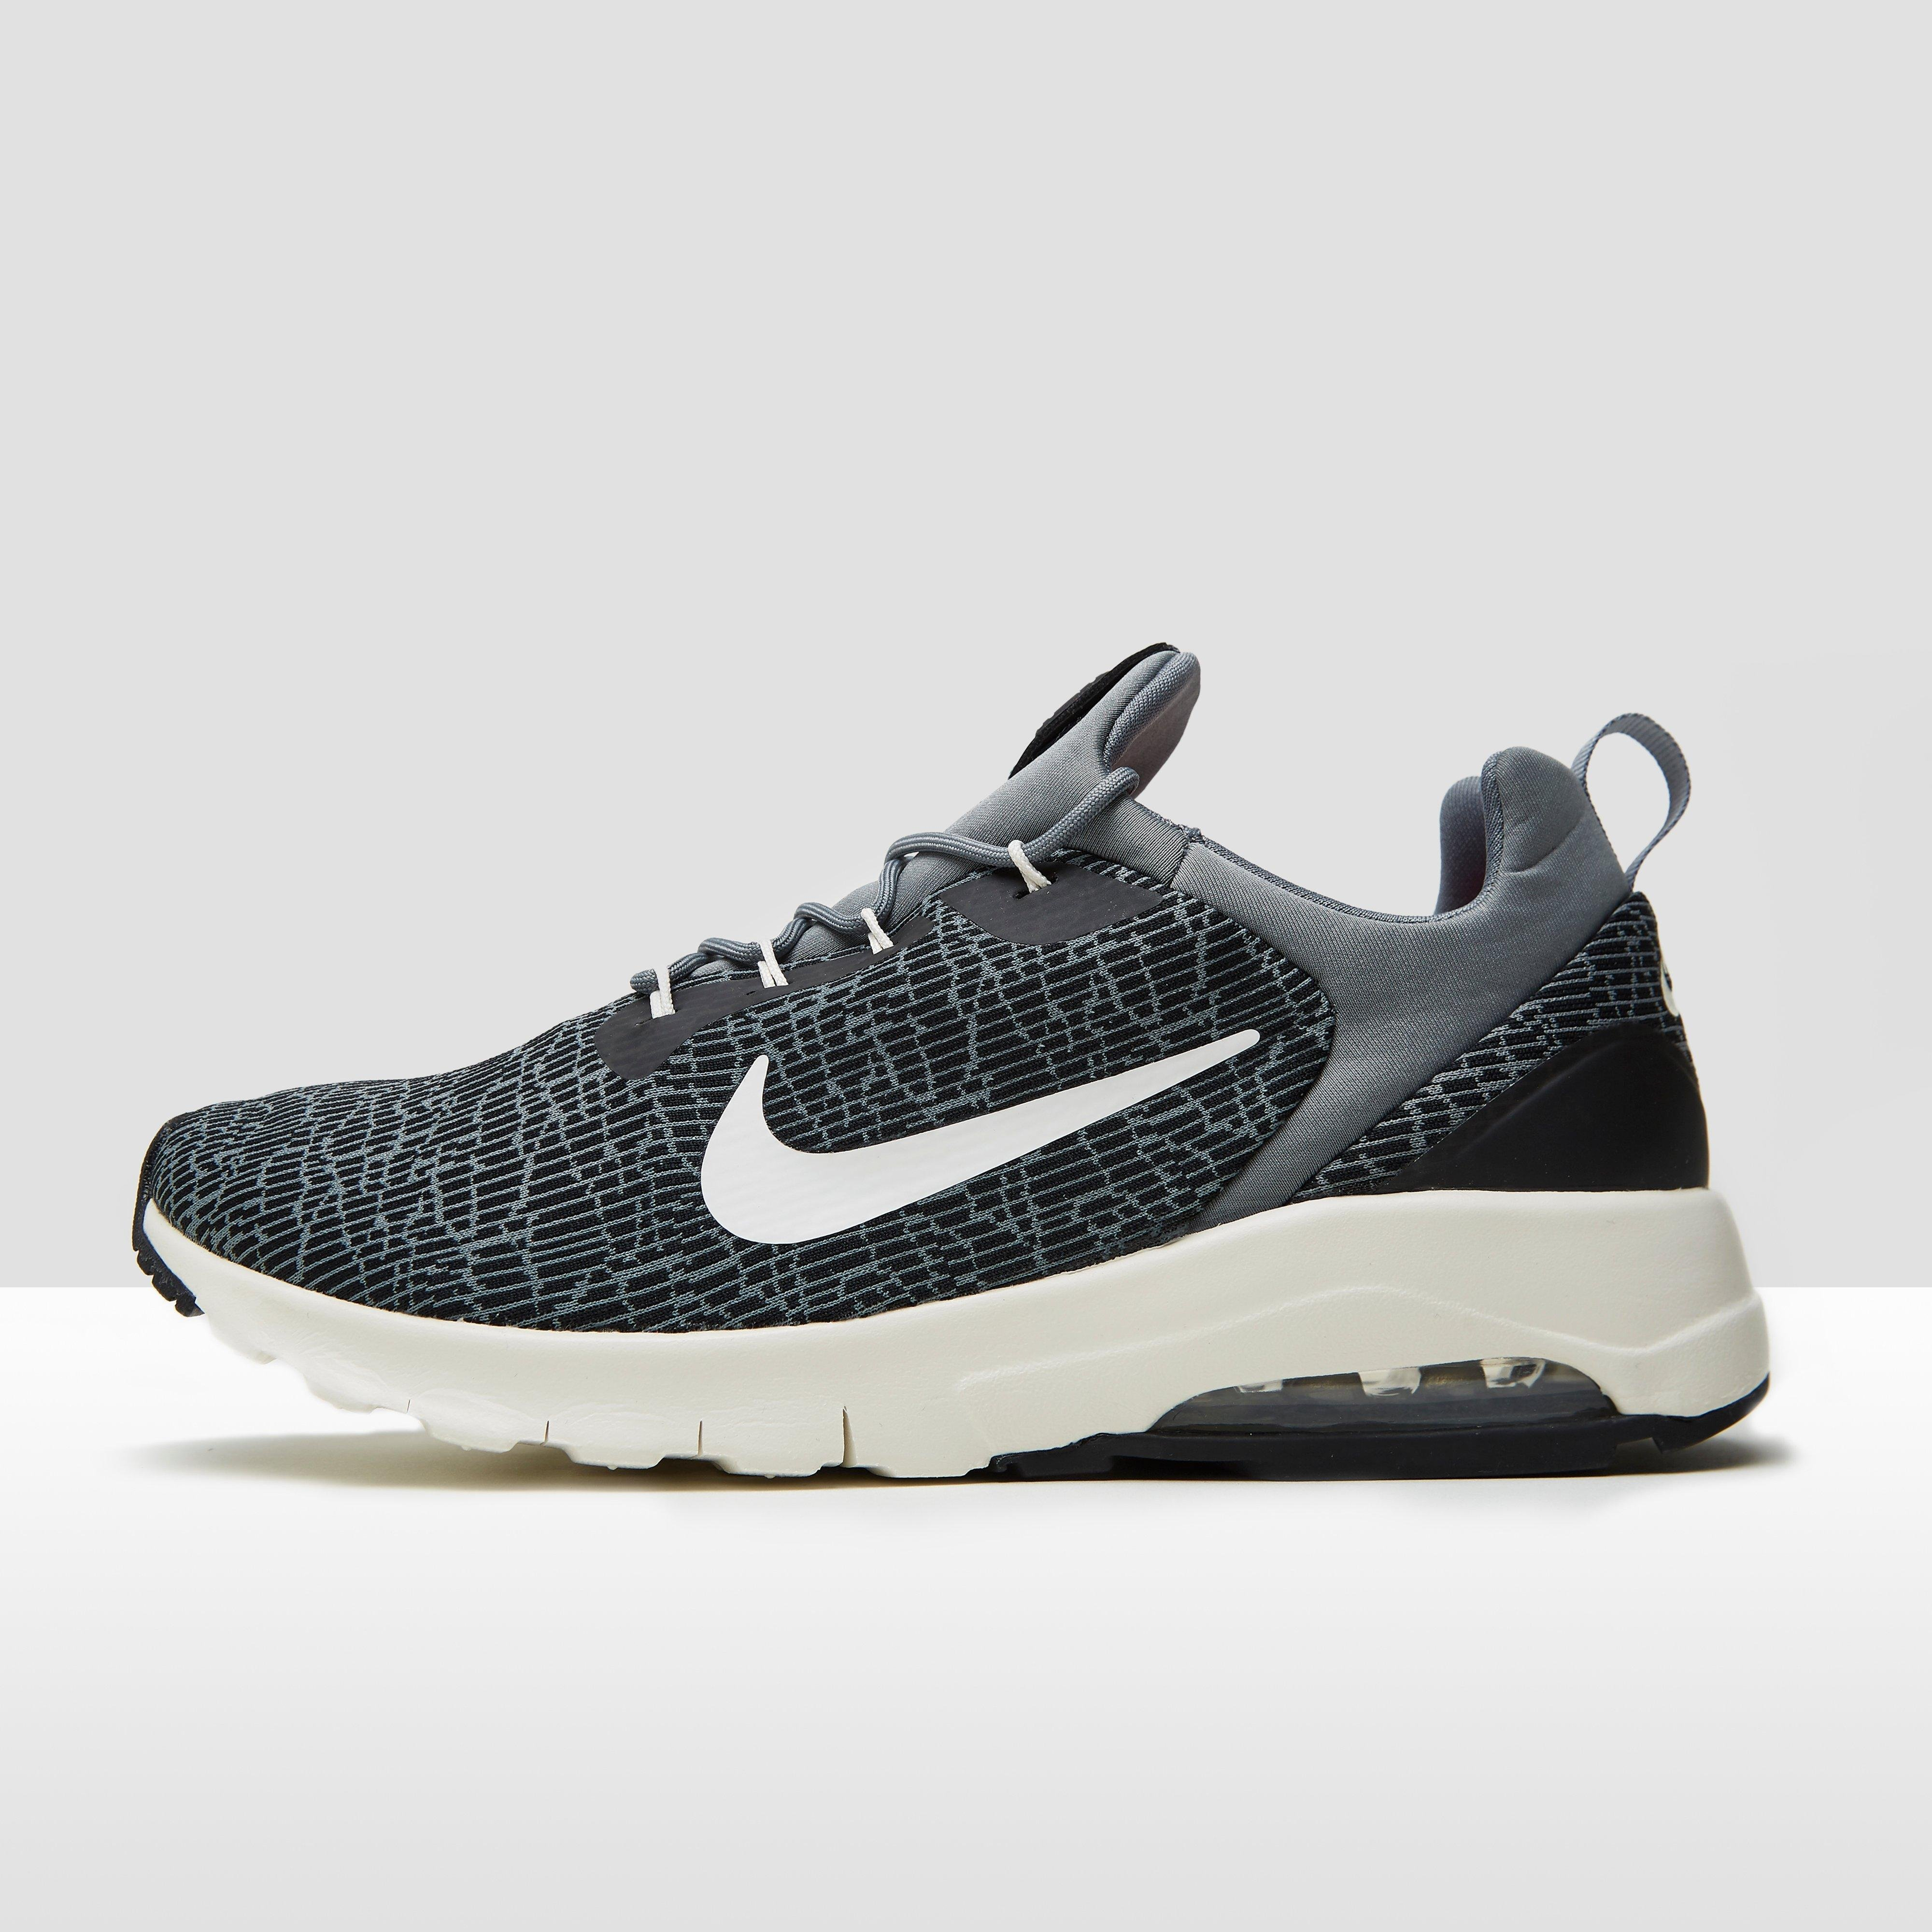 Nike Course De Mouvement Air Max - Noir / Blanc 20Wqe